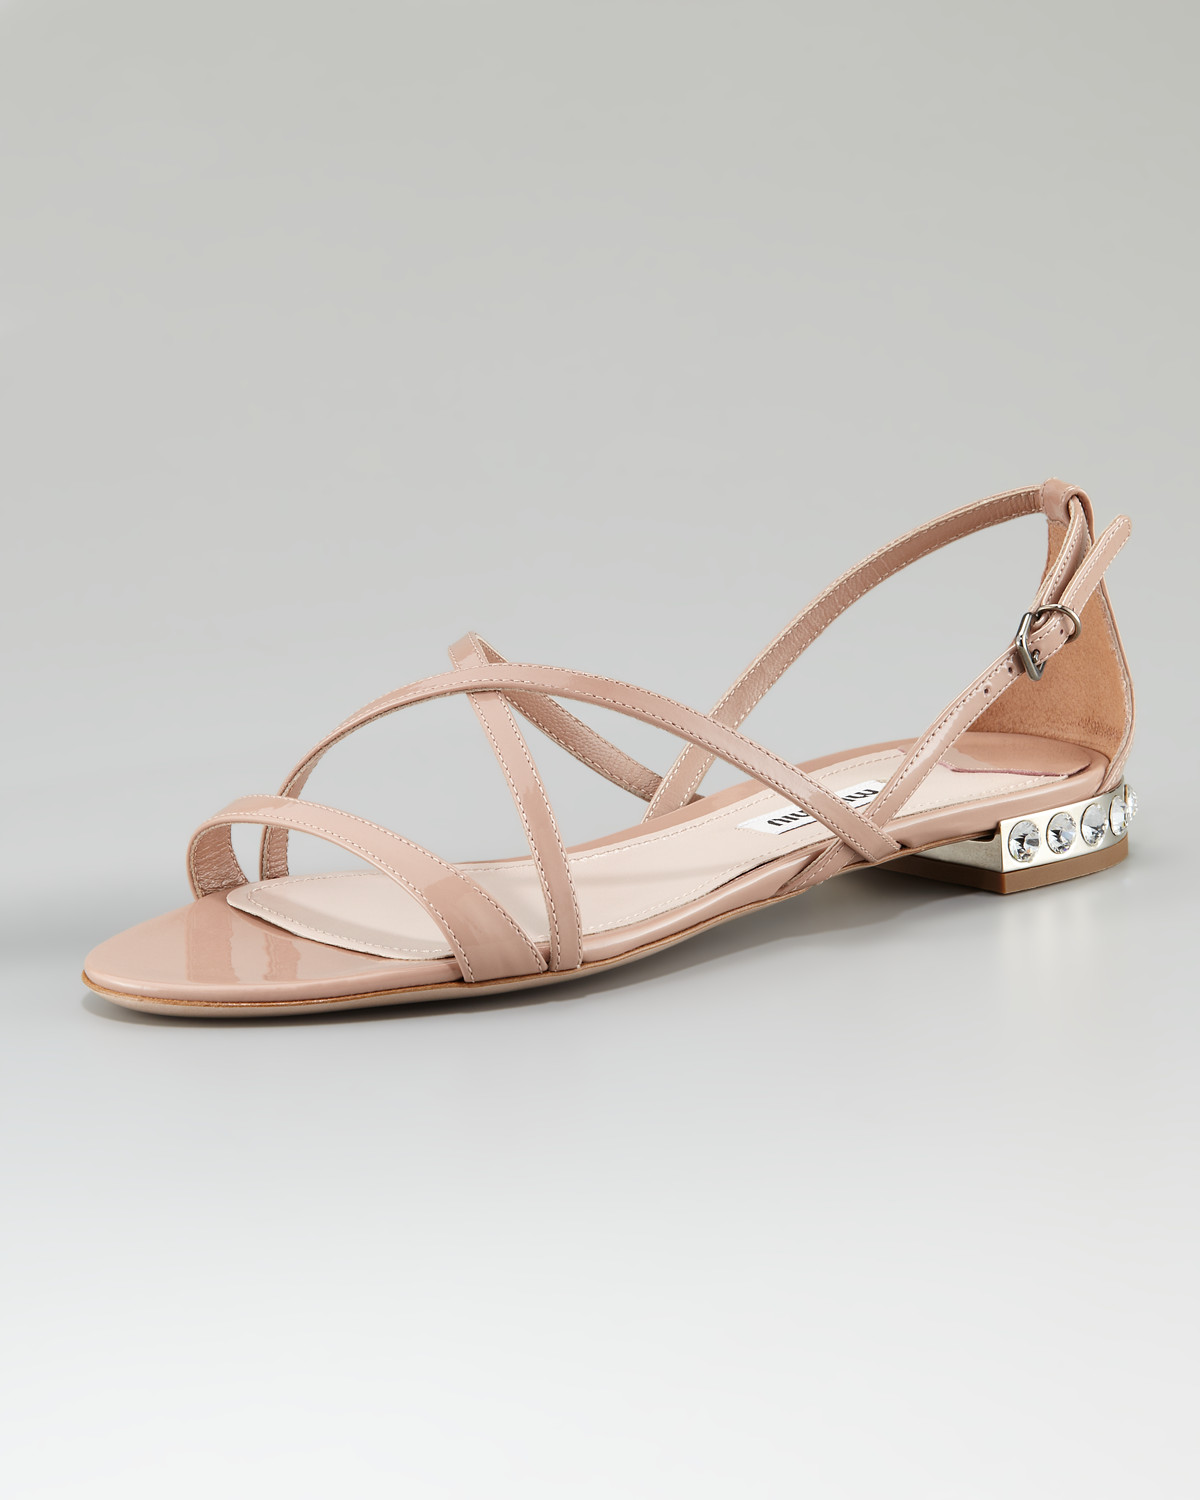 2530b1e10 Lyst - Miu Miu Bejeweled-heel Strappy Sandal in Natural